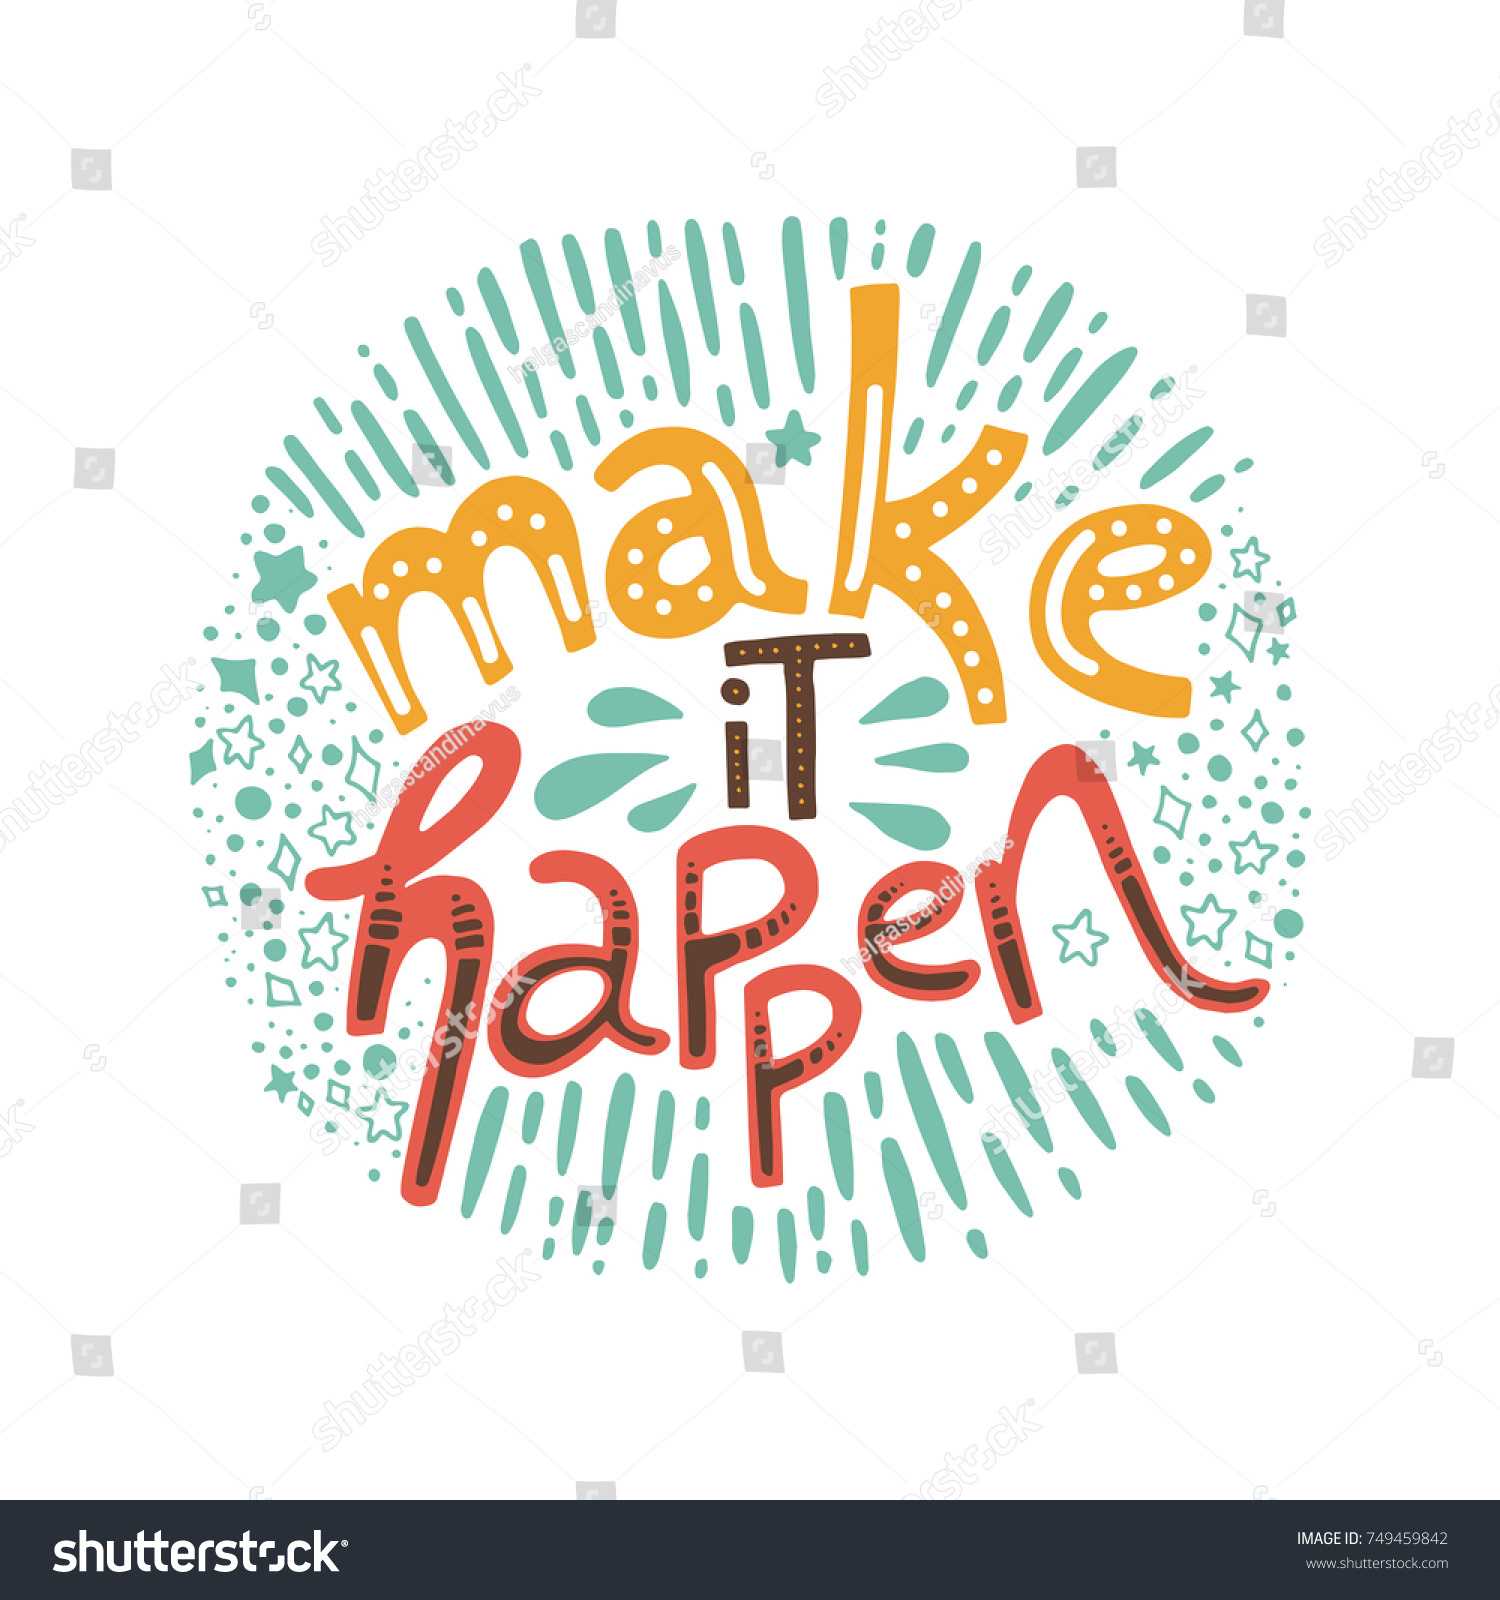 Make It Happen Hand Drawn Lettering Motivation And Inspiration Quote Stock Vector